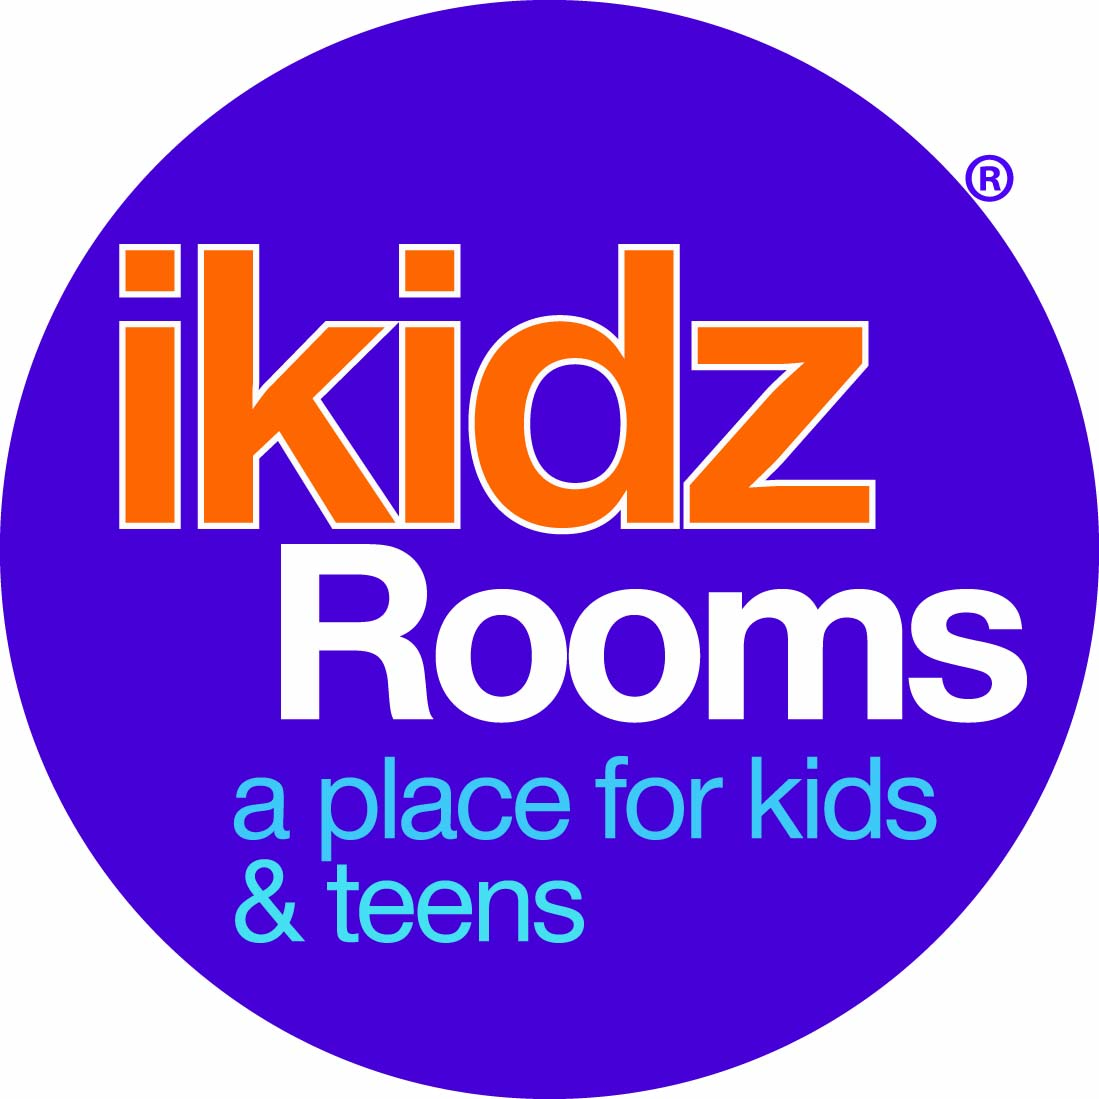 IKidz Room Furnishings In Sherburne, NY